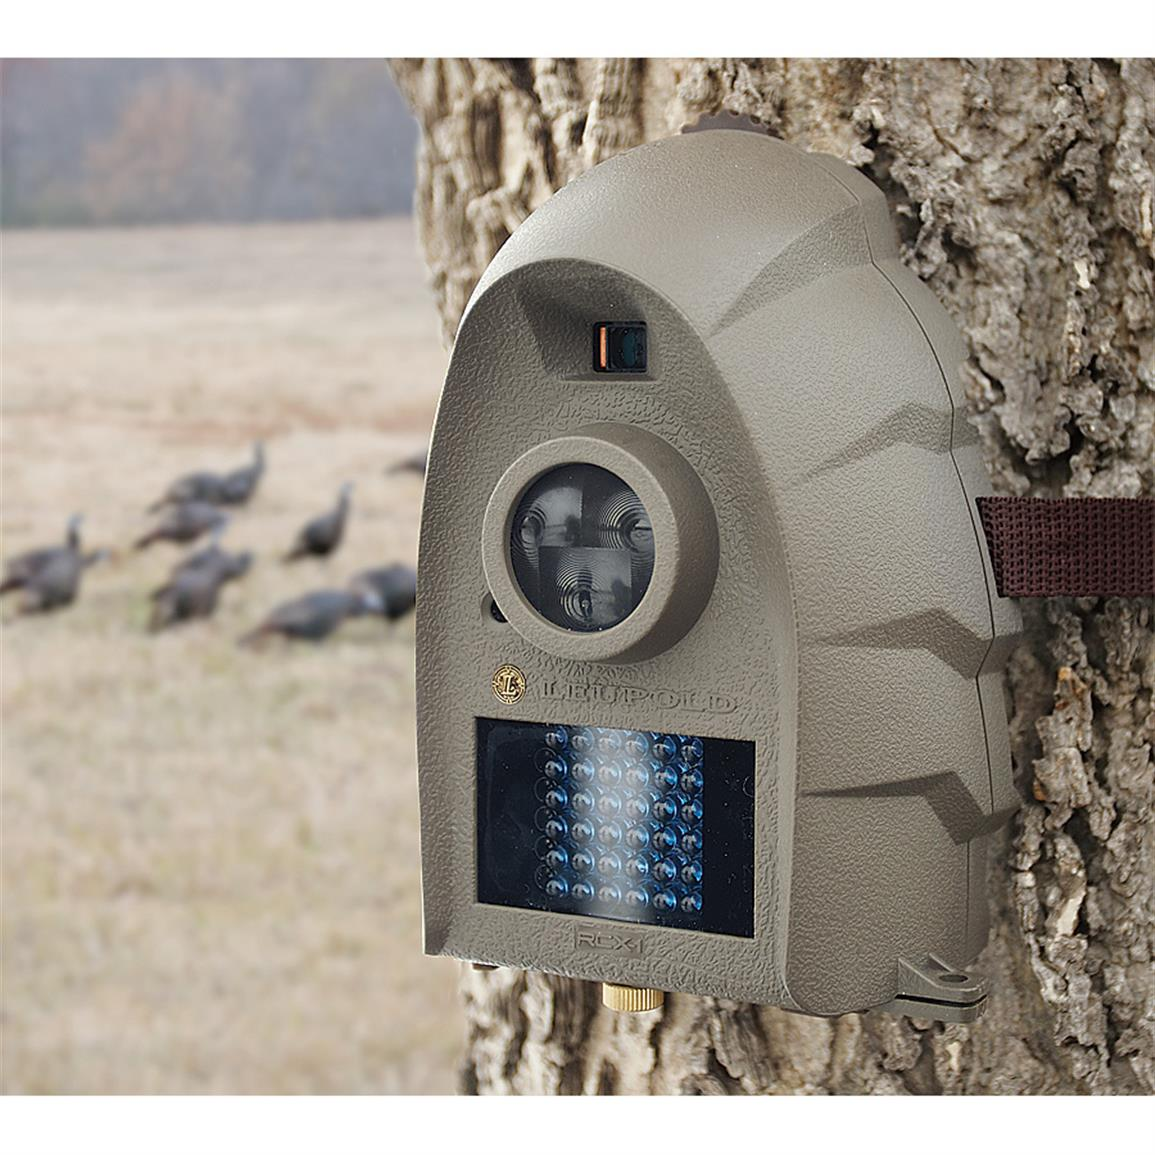 Leupold® RCX-1 8MP Trail Camera